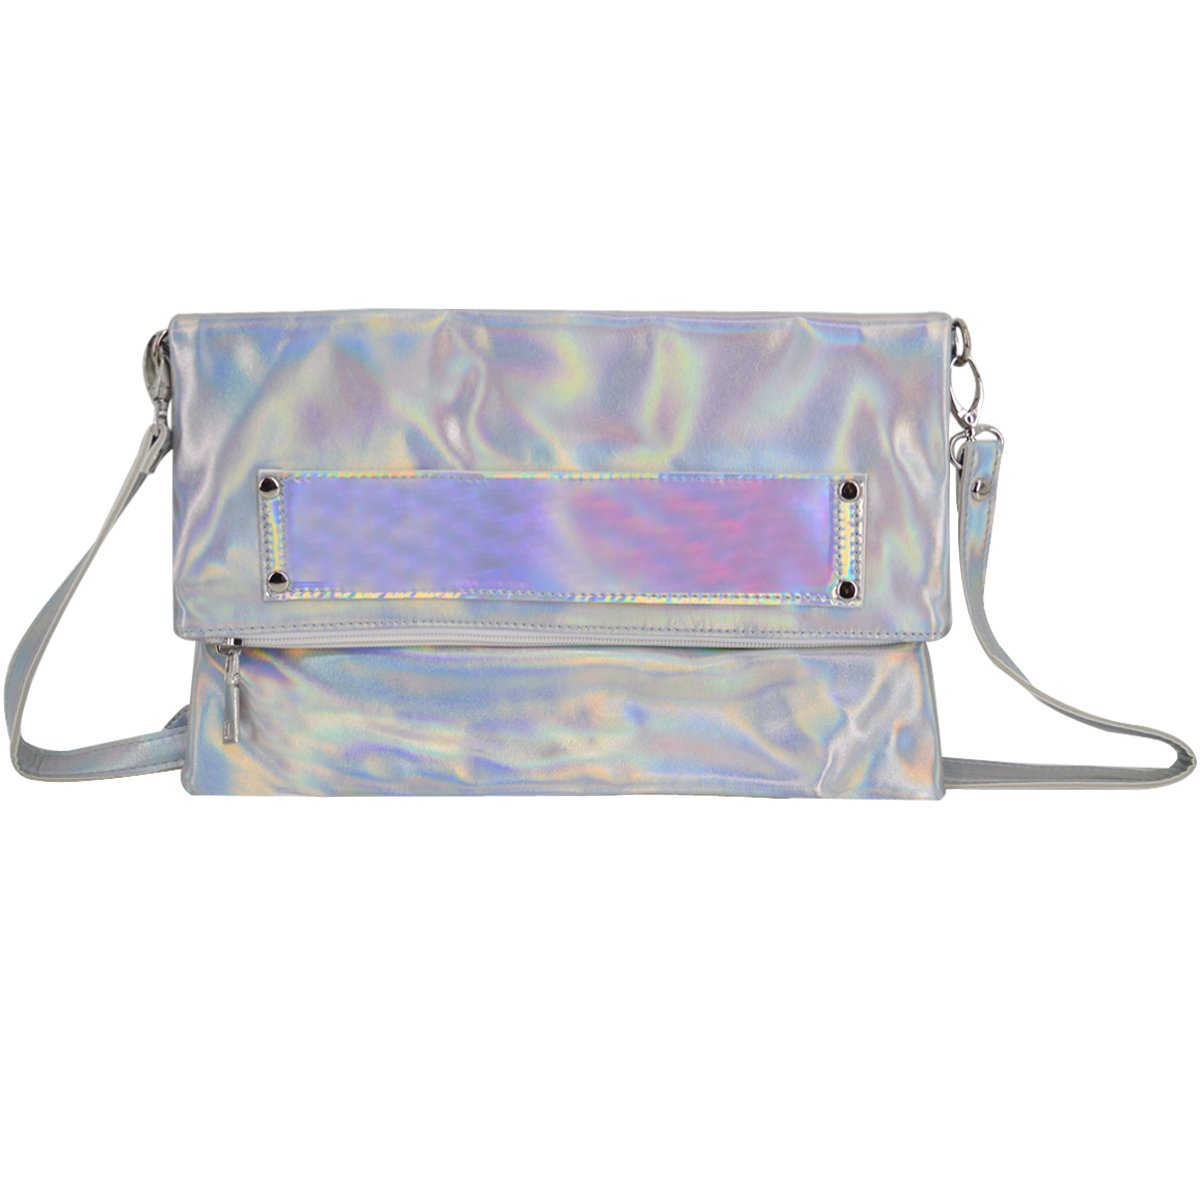 Monique Women Mini Holographic PU Leather Clutch Handbag Cross-body Bag Envelope Purse for Shopping Party Travel Silver